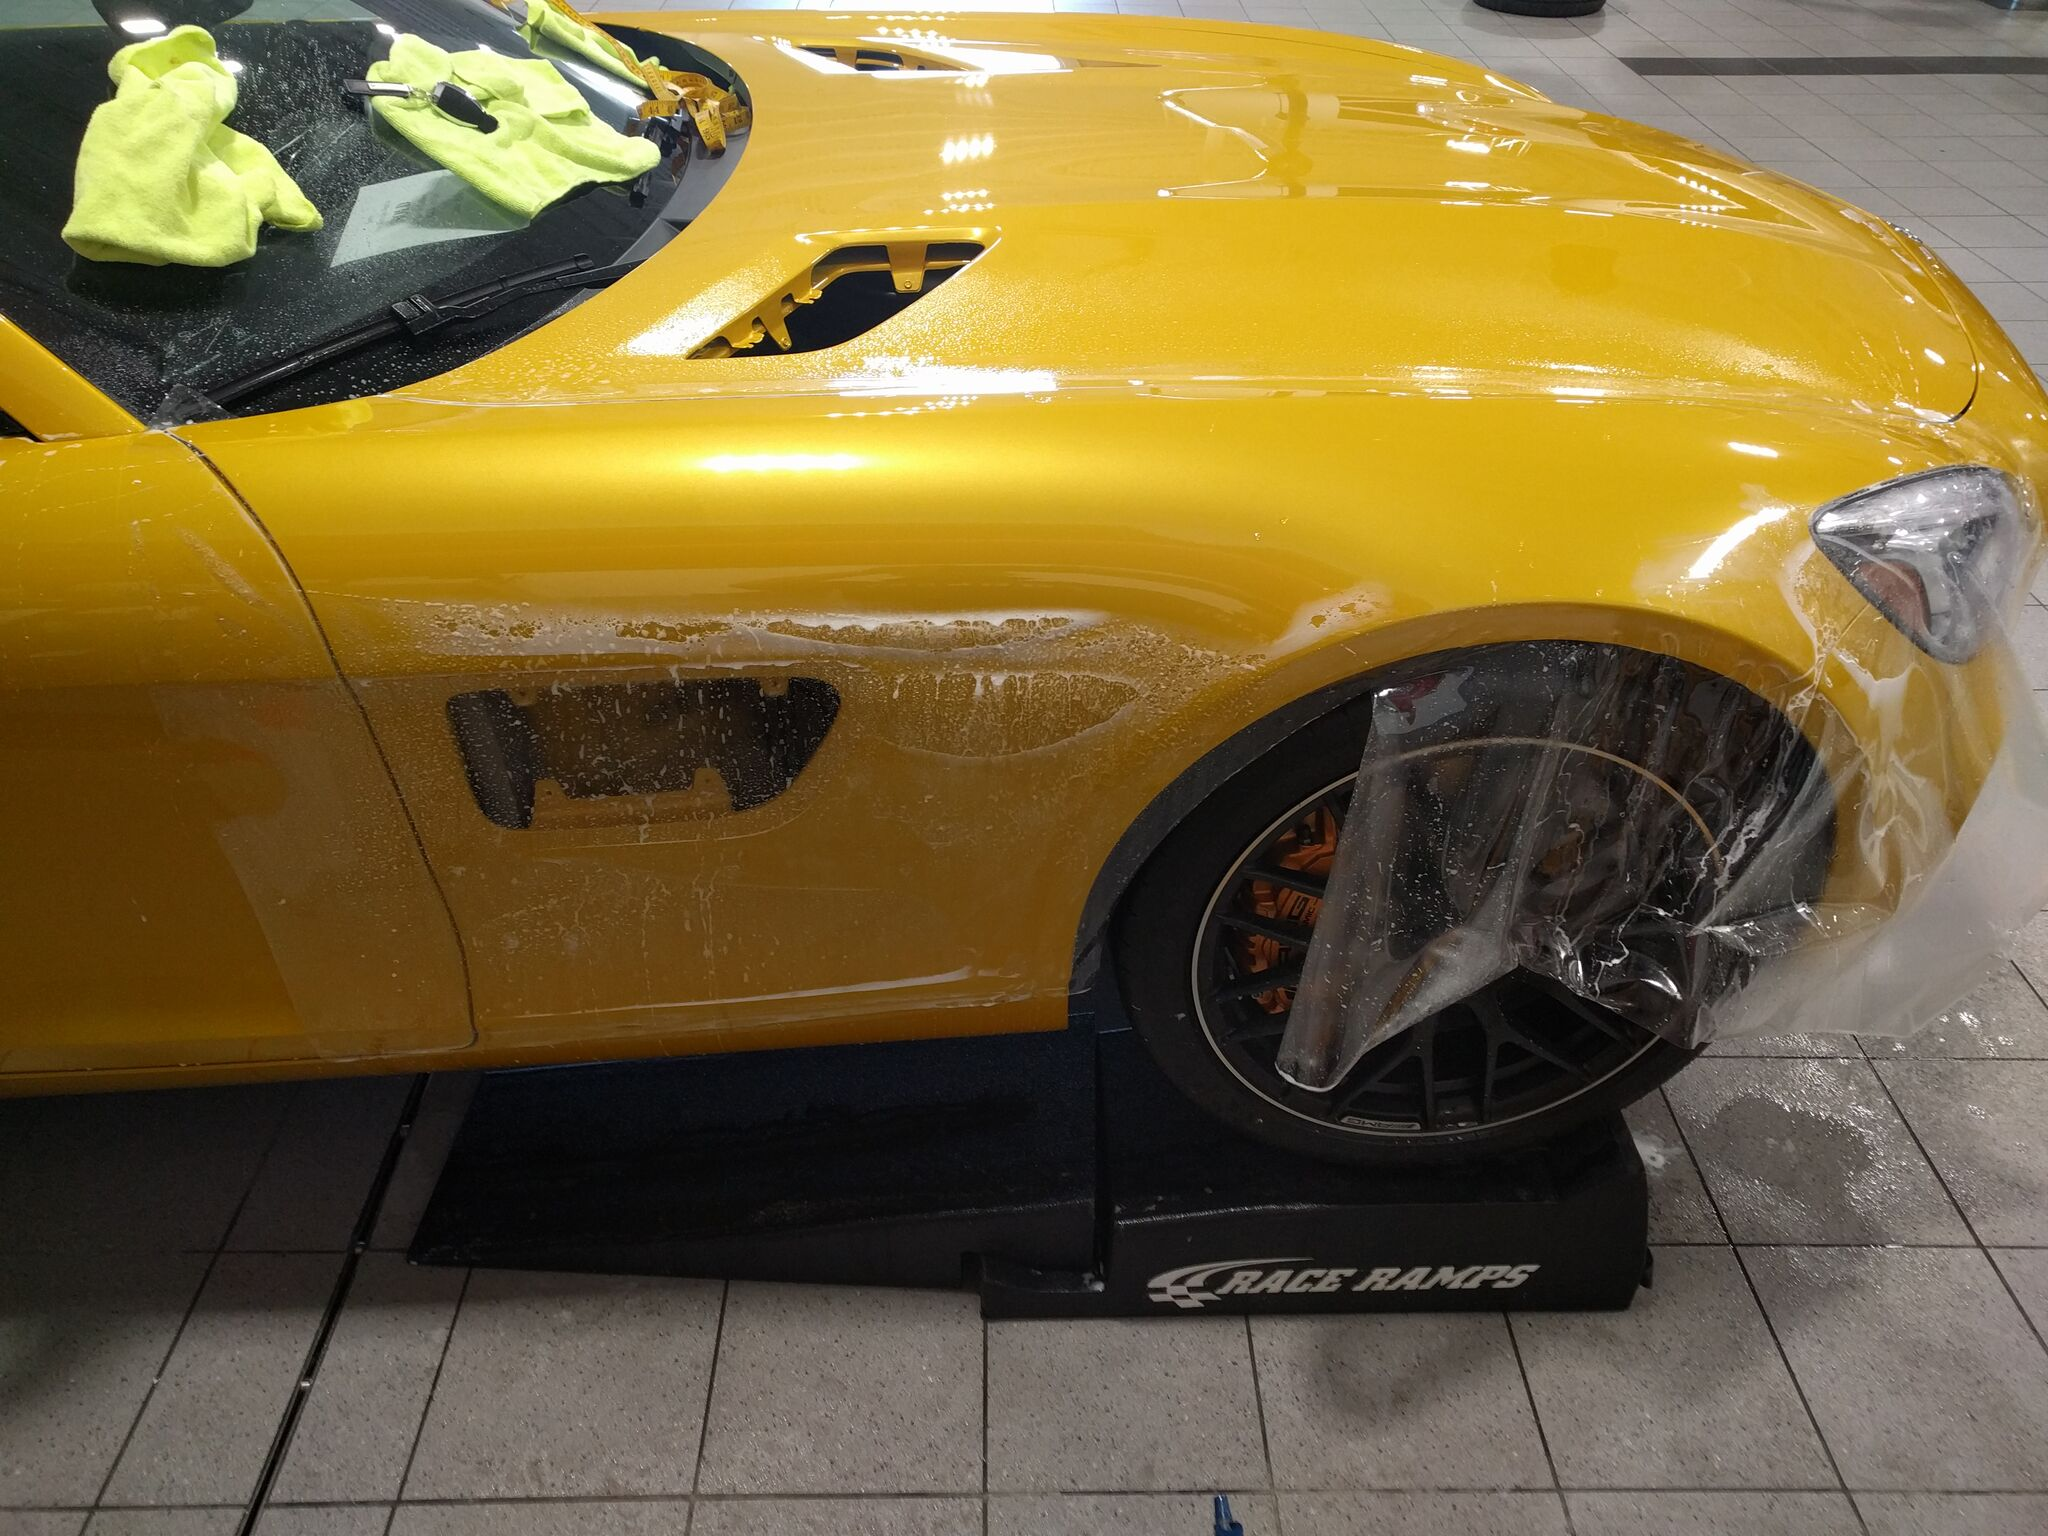 Mercedes AMG GTS gets Xpel Paint Protection 4